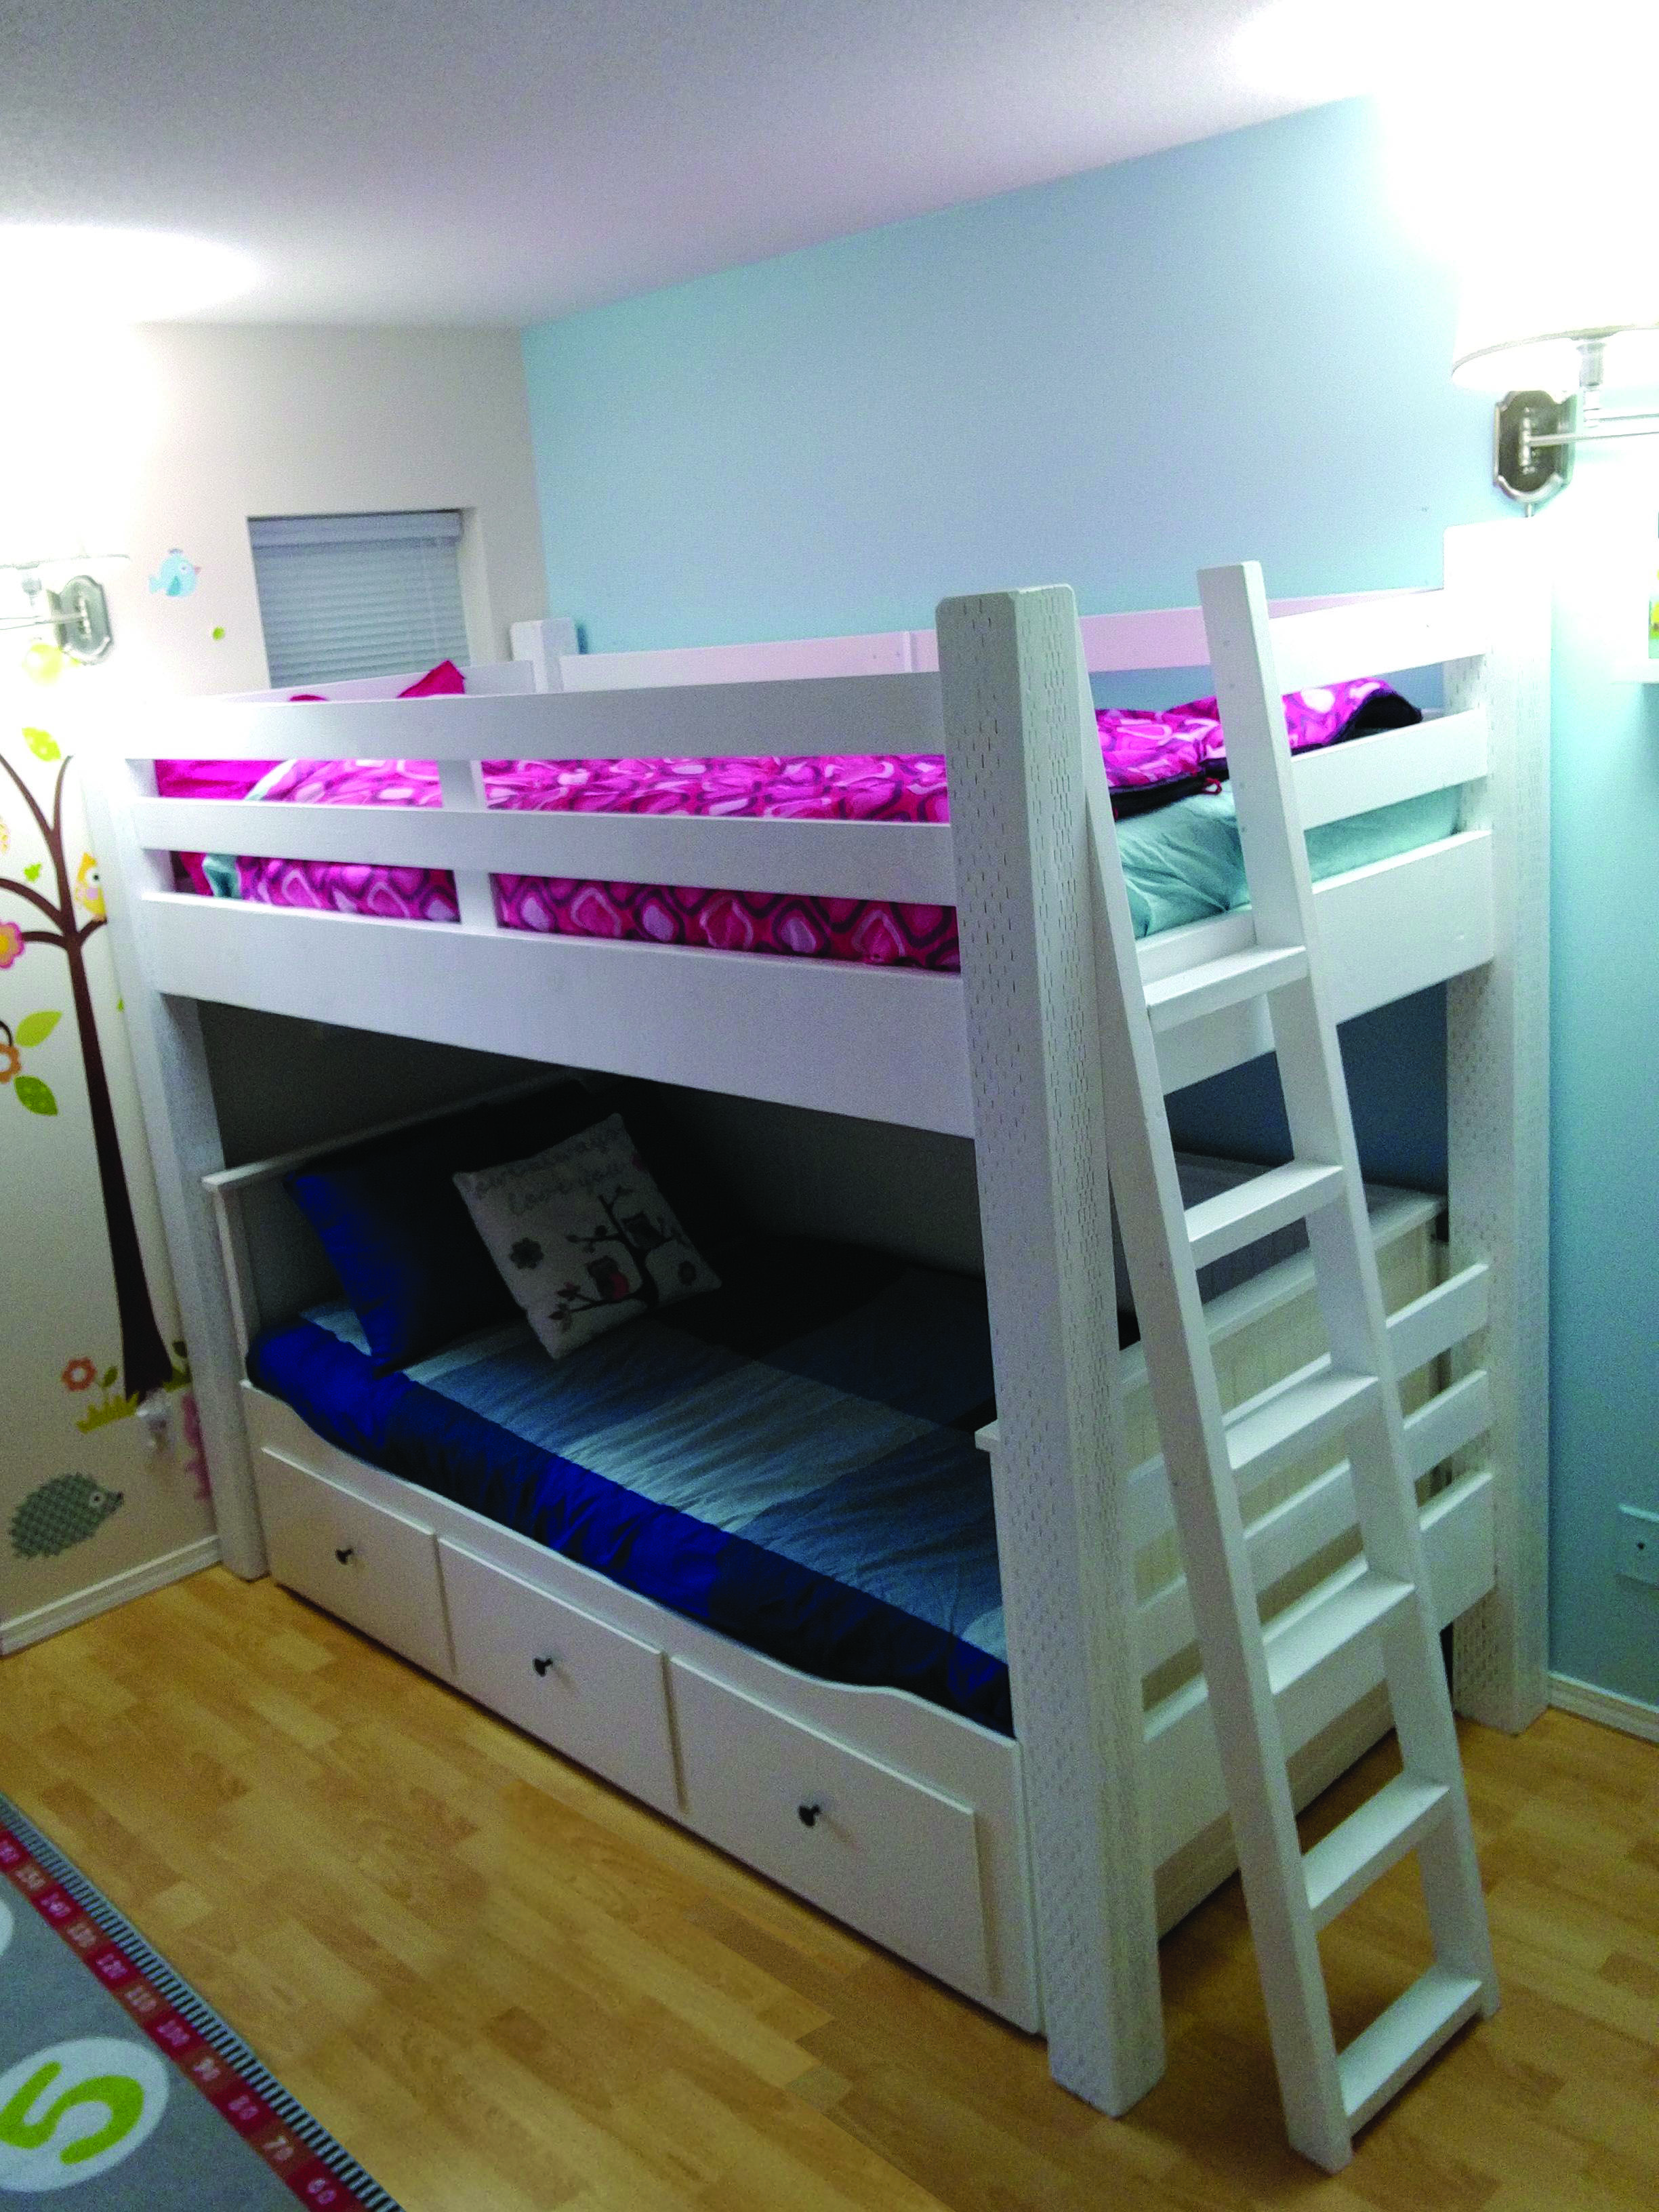 Finest Ikea Bunk Bed Ladder Cover Made Easy Stuva Hochbett Bett Kinderzimmer Ikea Babybett